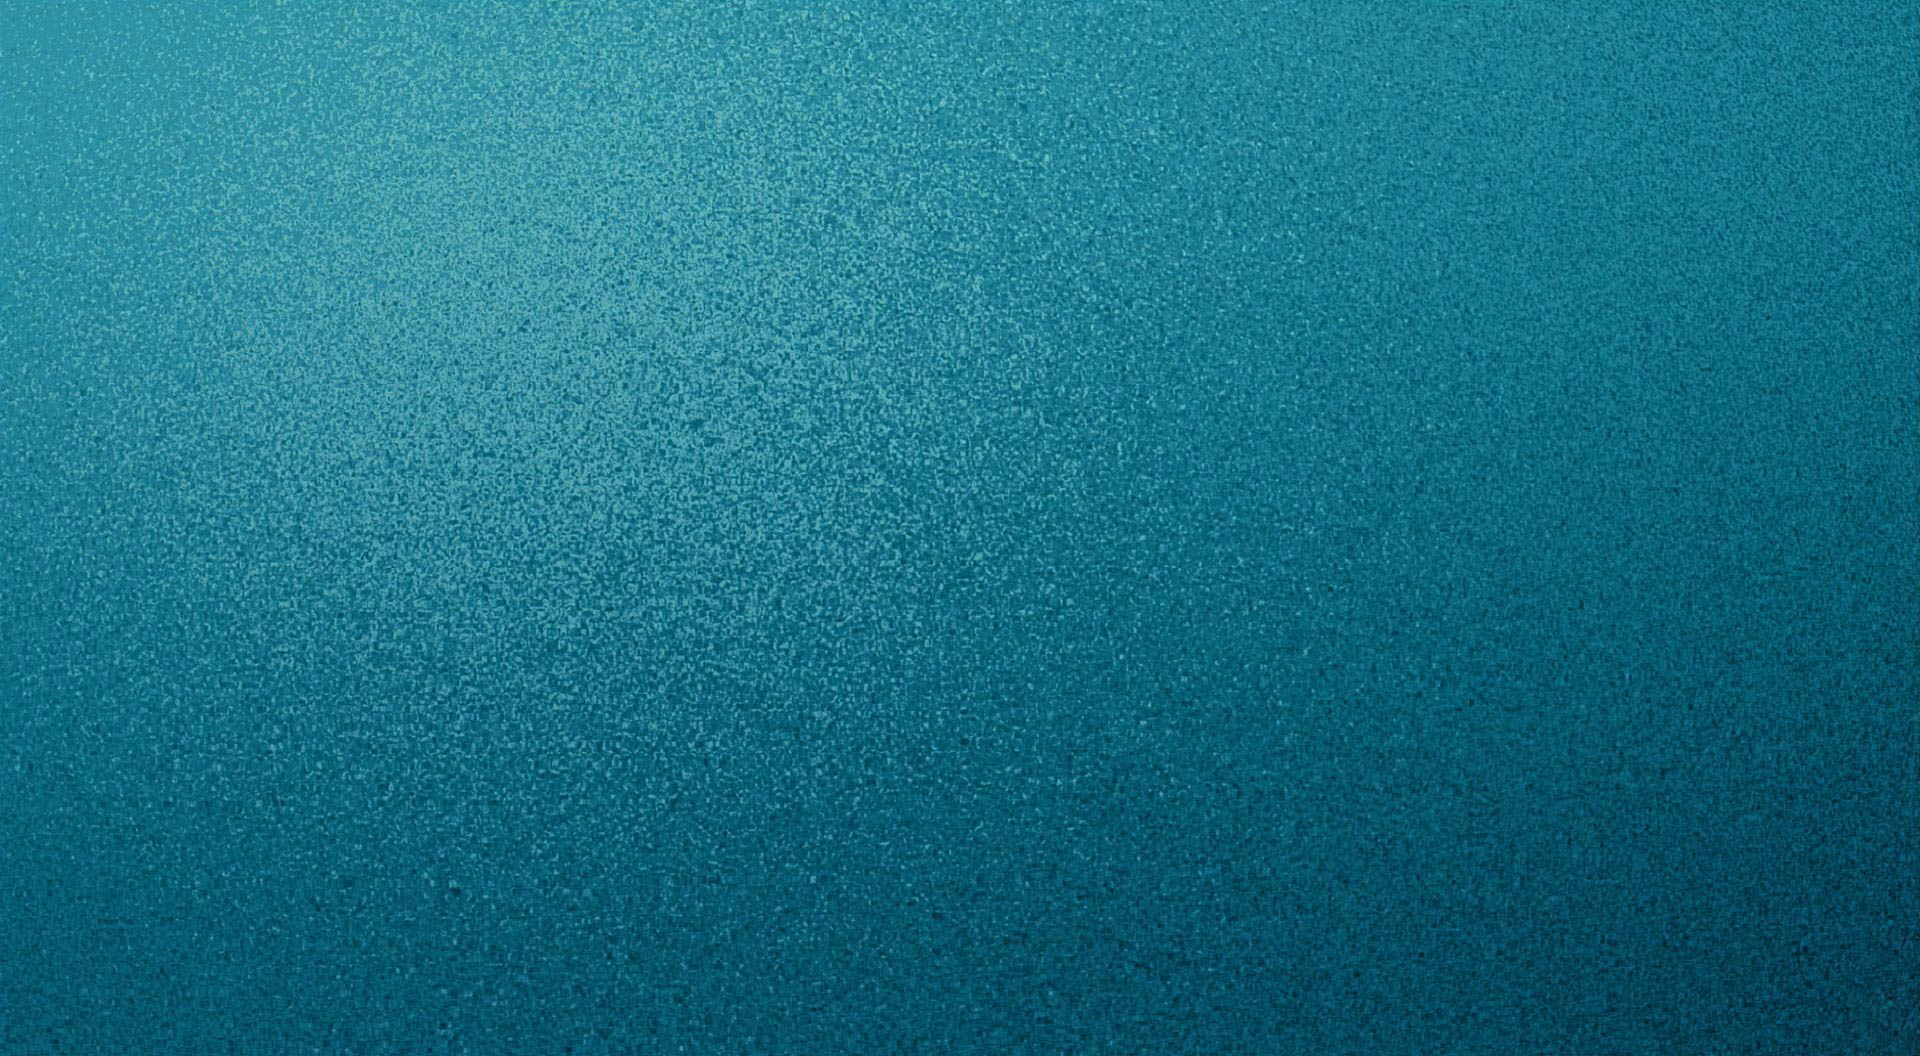 aqua blue textured background desktop wallpaper